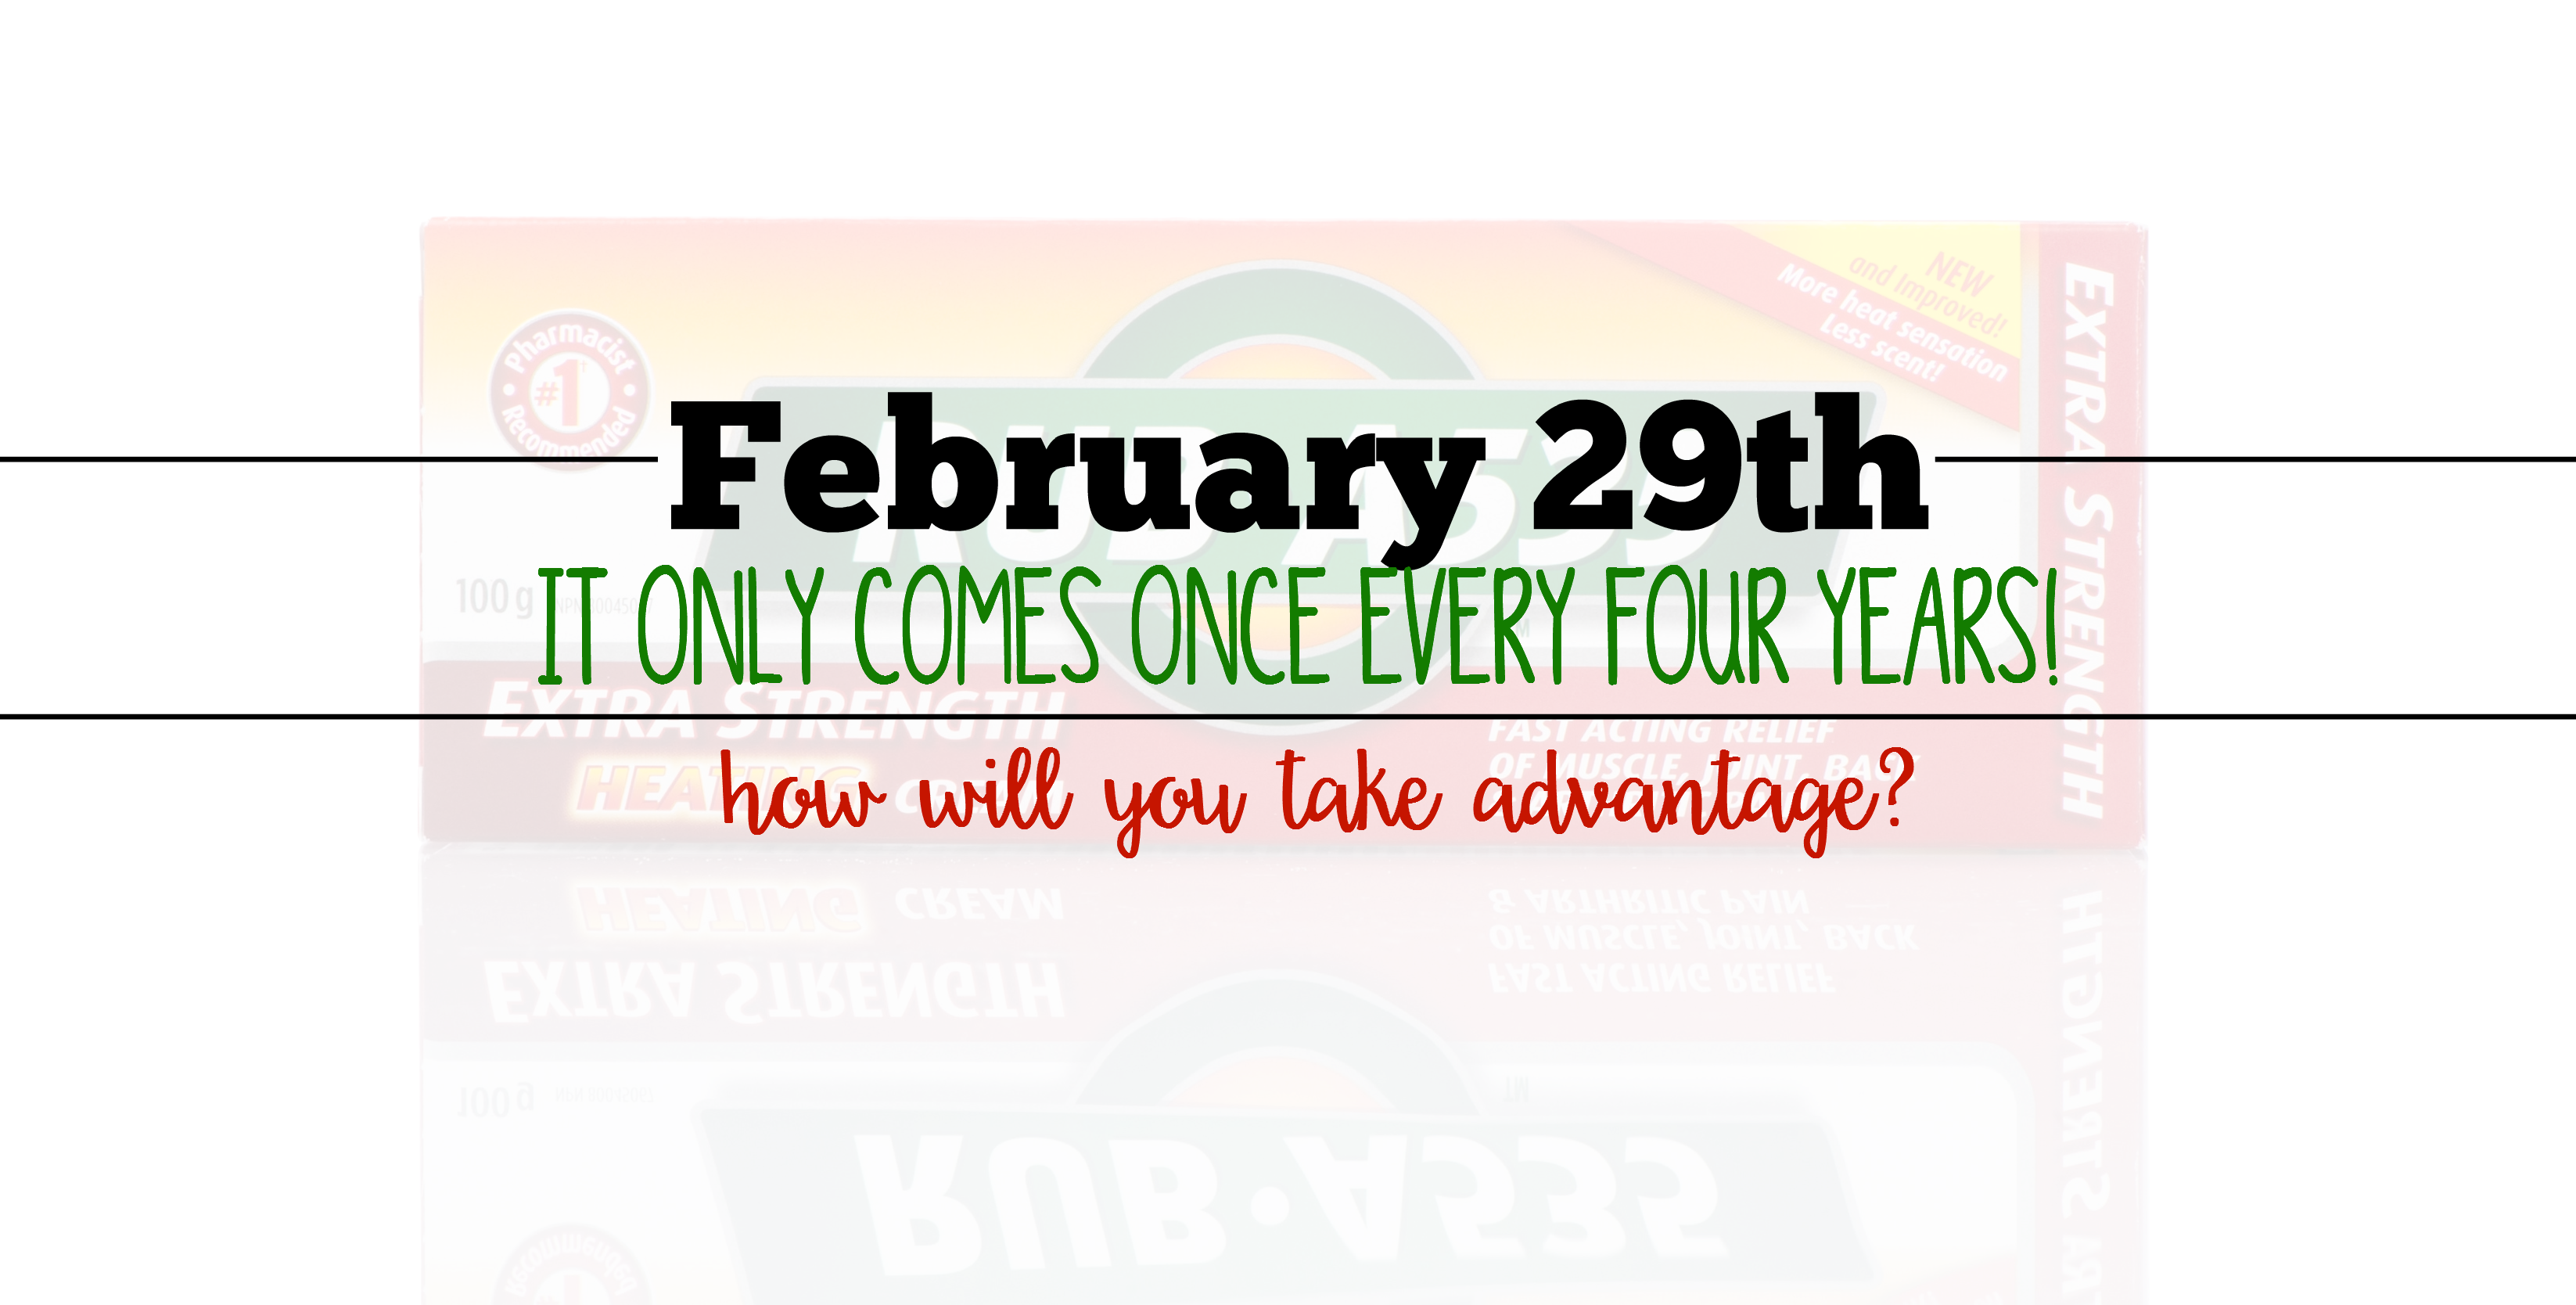 February 29th – it Only Comes Once Every Four Years!